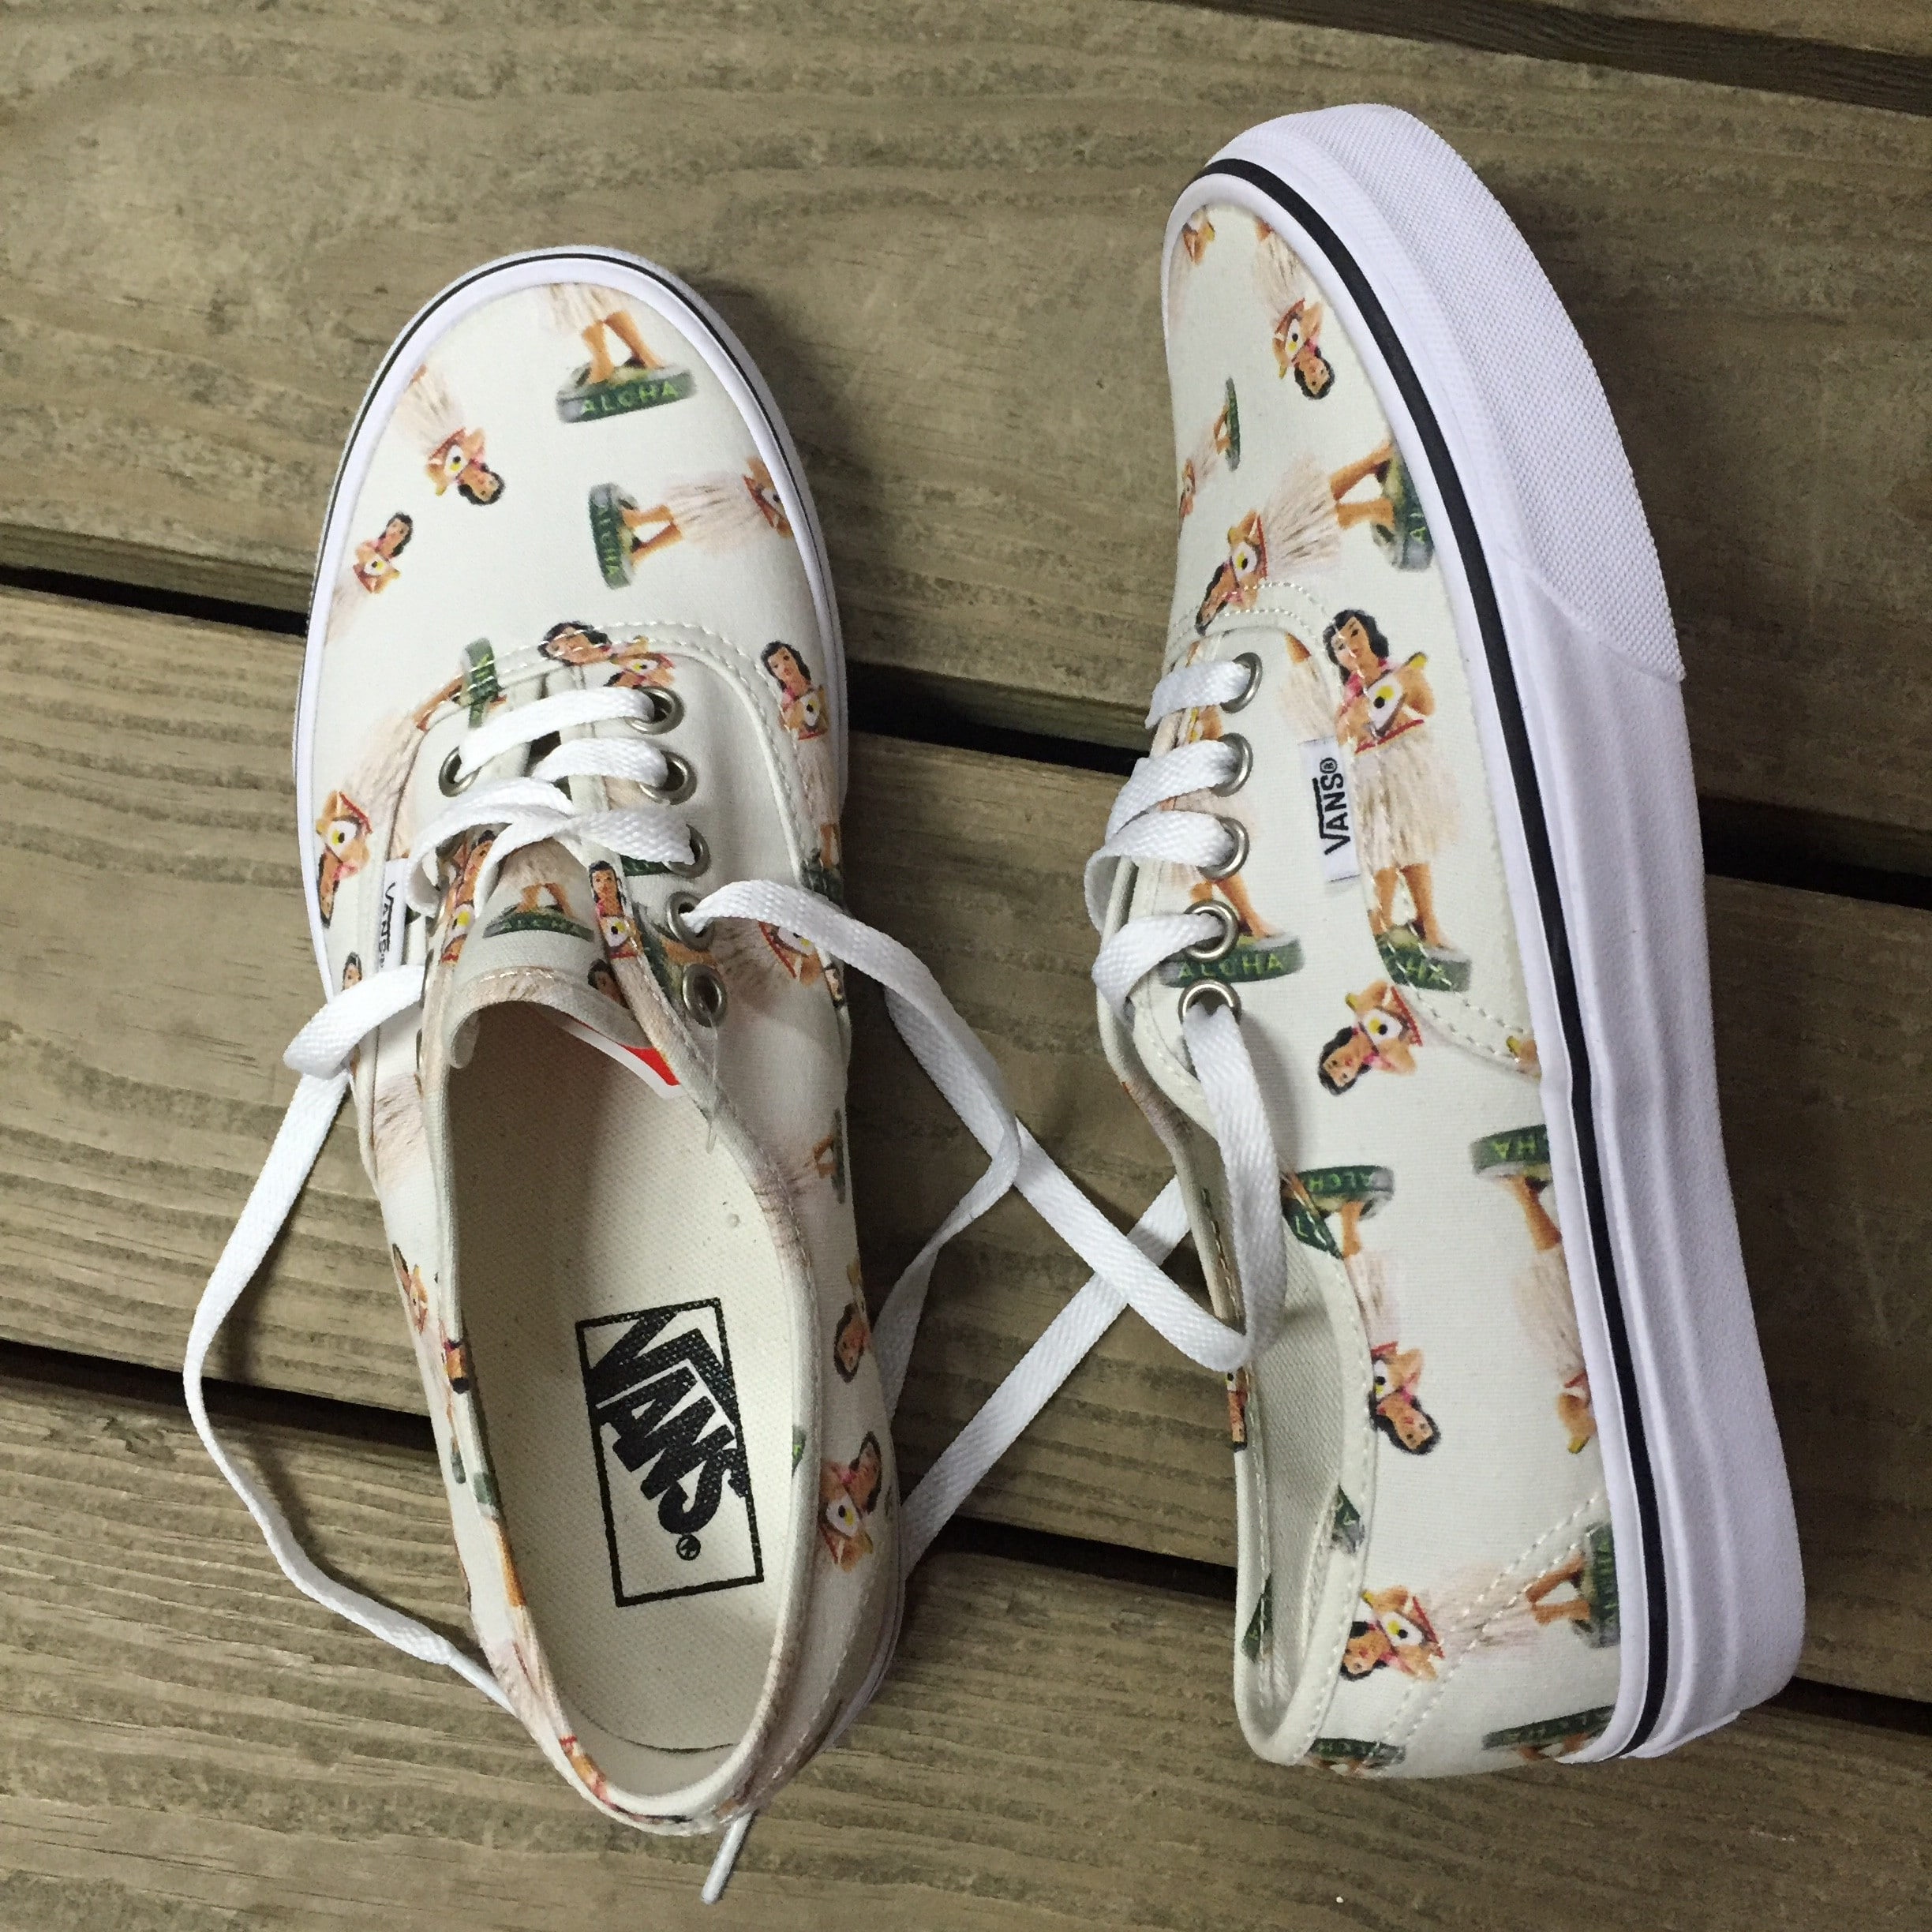 Celebrate Vans 50th with some festive